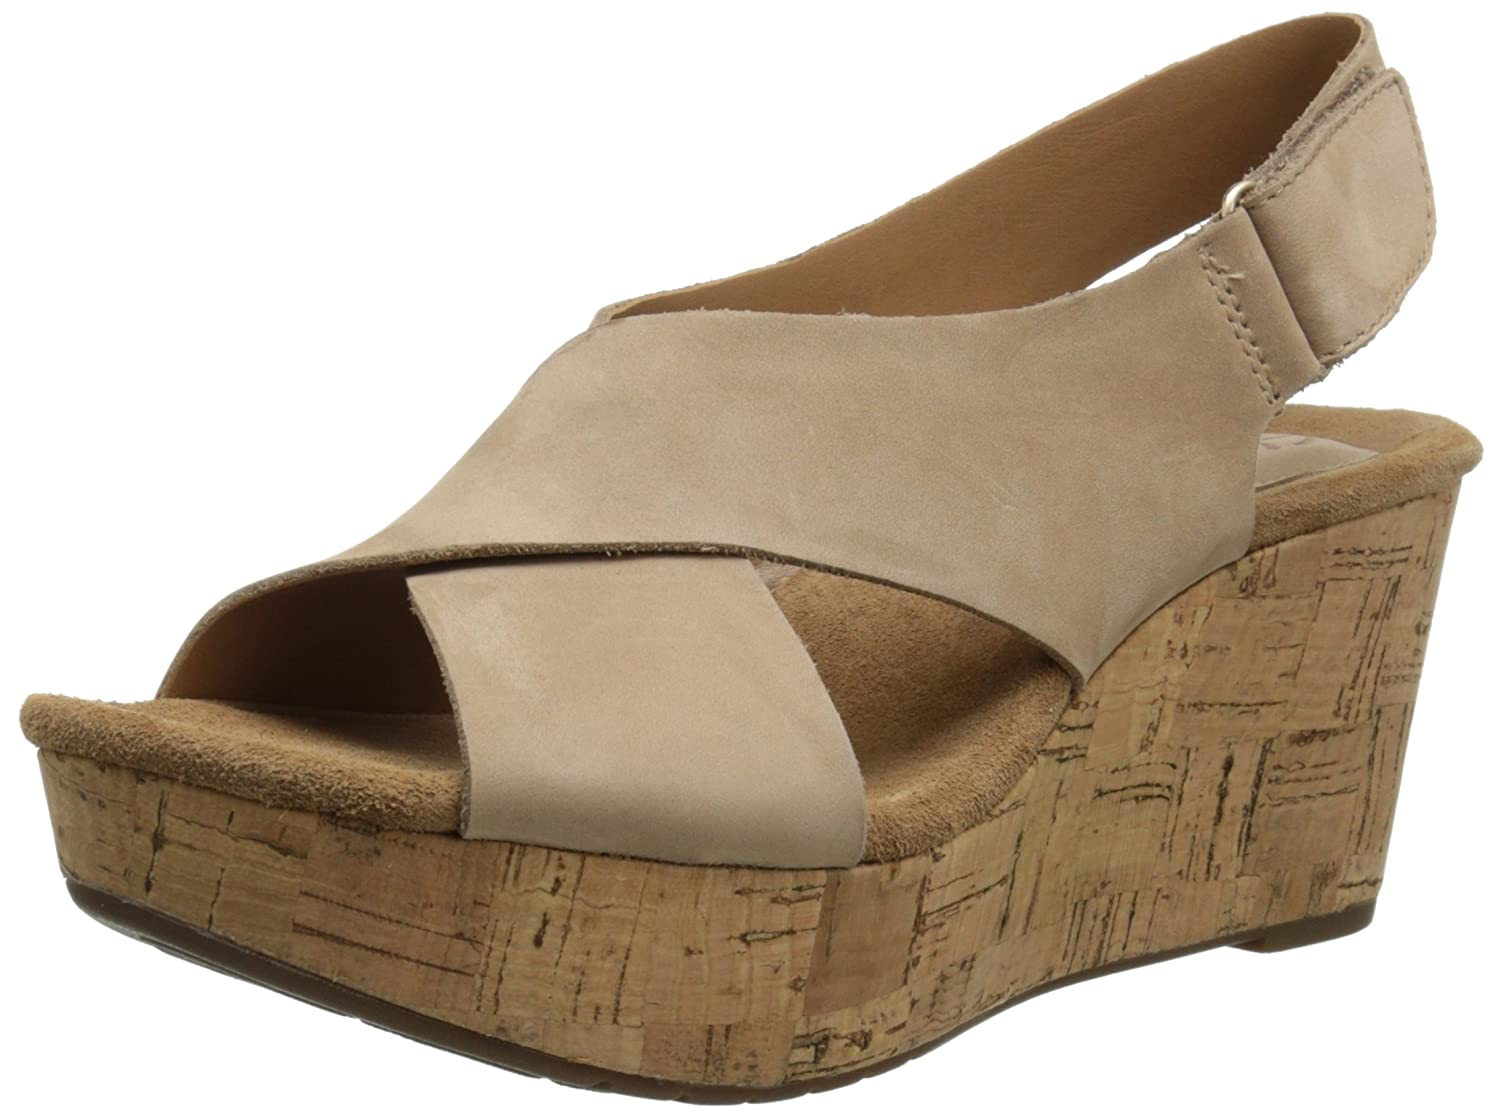 cf493be6a2 10 Best Clarks Shoes For Women With Flat Feet 2018-2019 on Flipboard ...